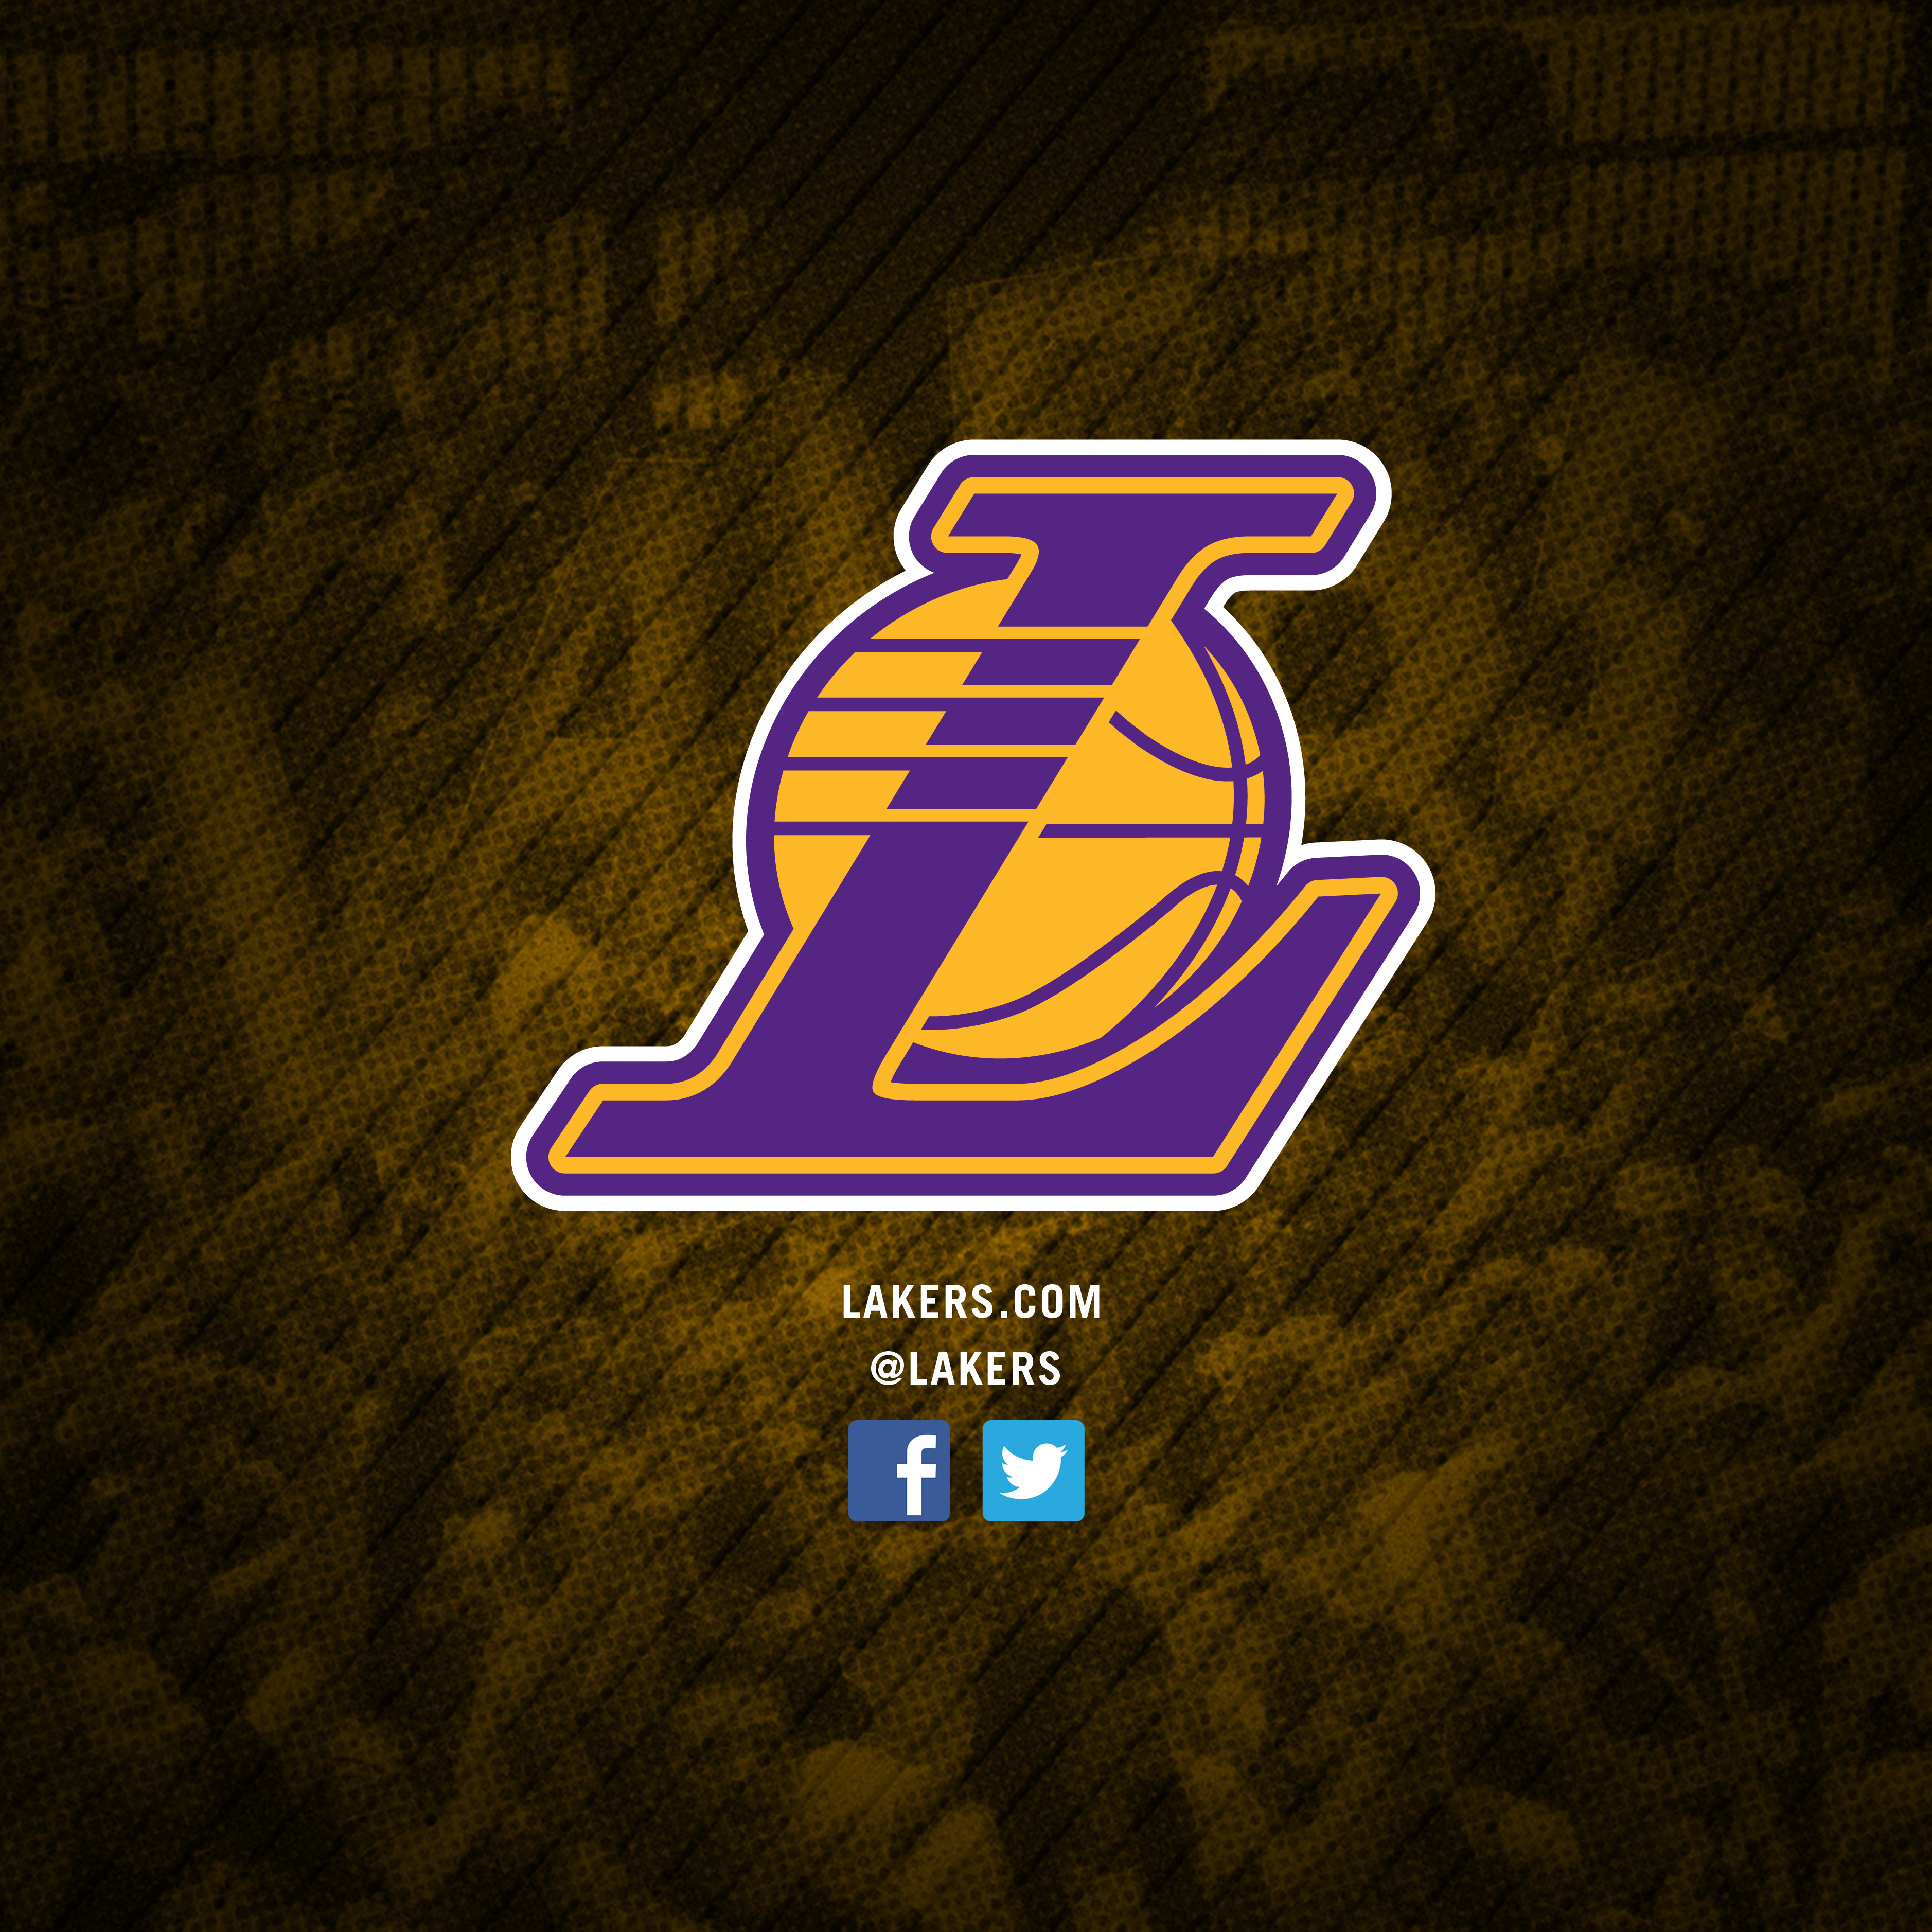 Lakers Gold Wallpaper